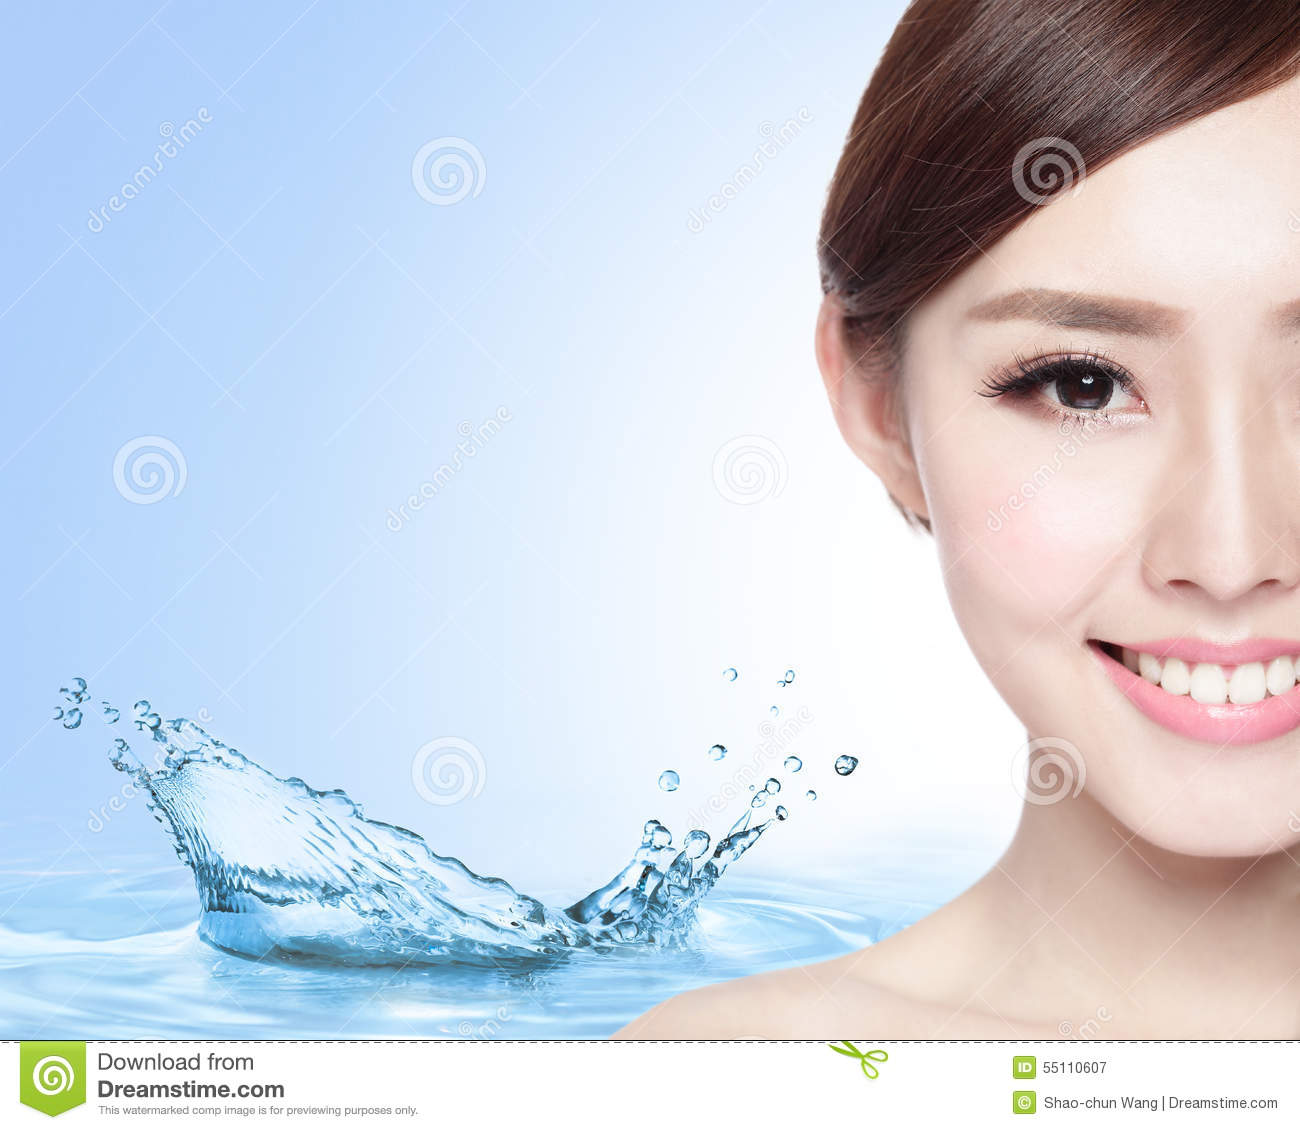 Skin Care Model: Beauty Skin Care Concept Stock Image. Image Of Blue, Half